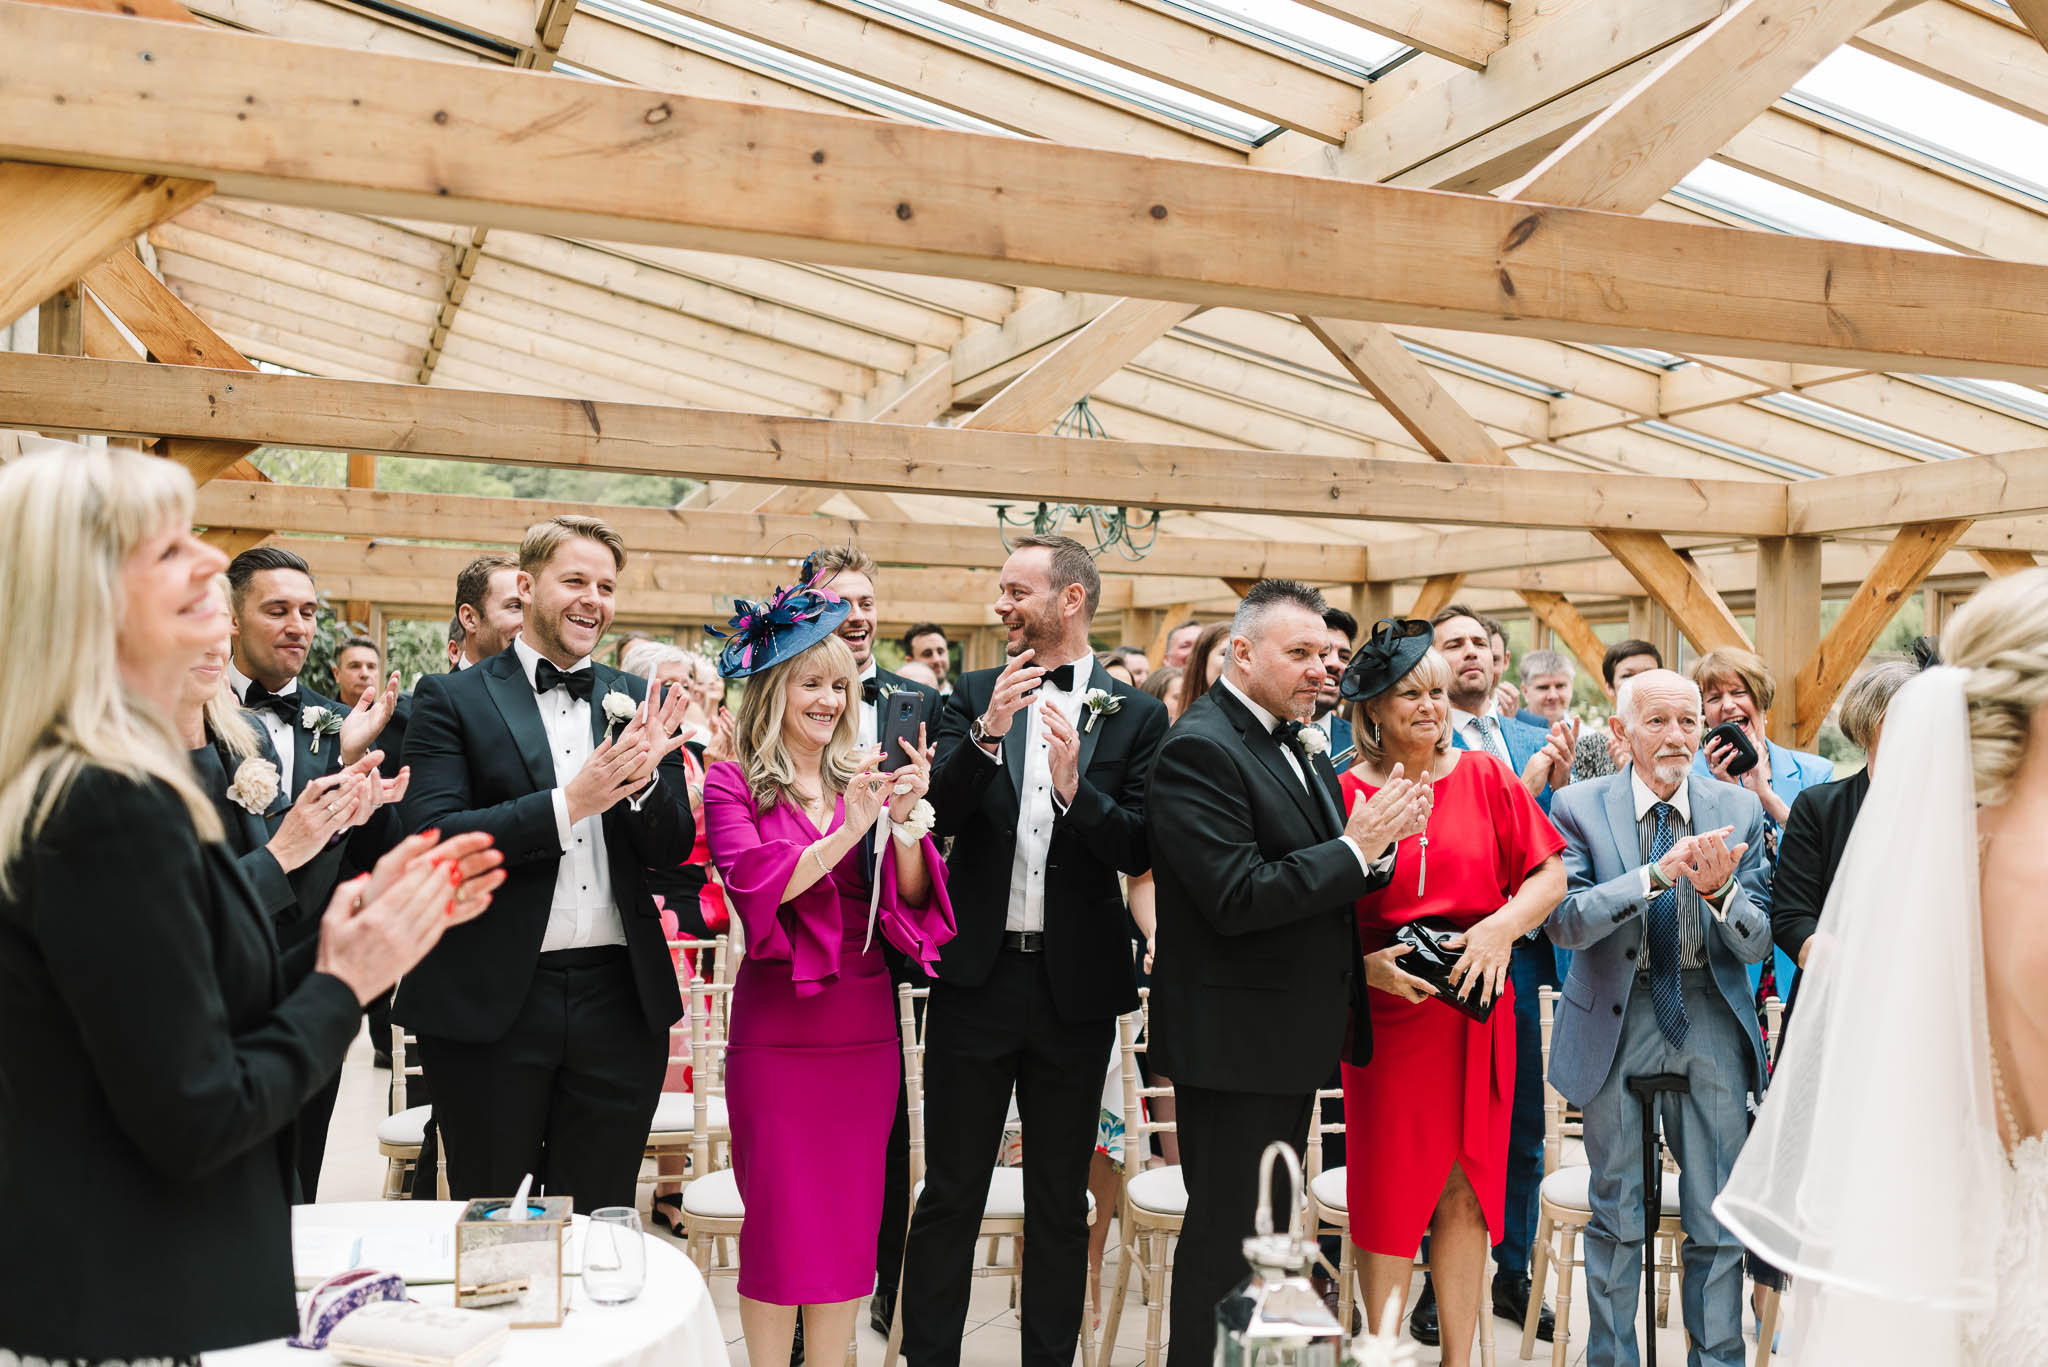 wedding guests clapping during ceremony